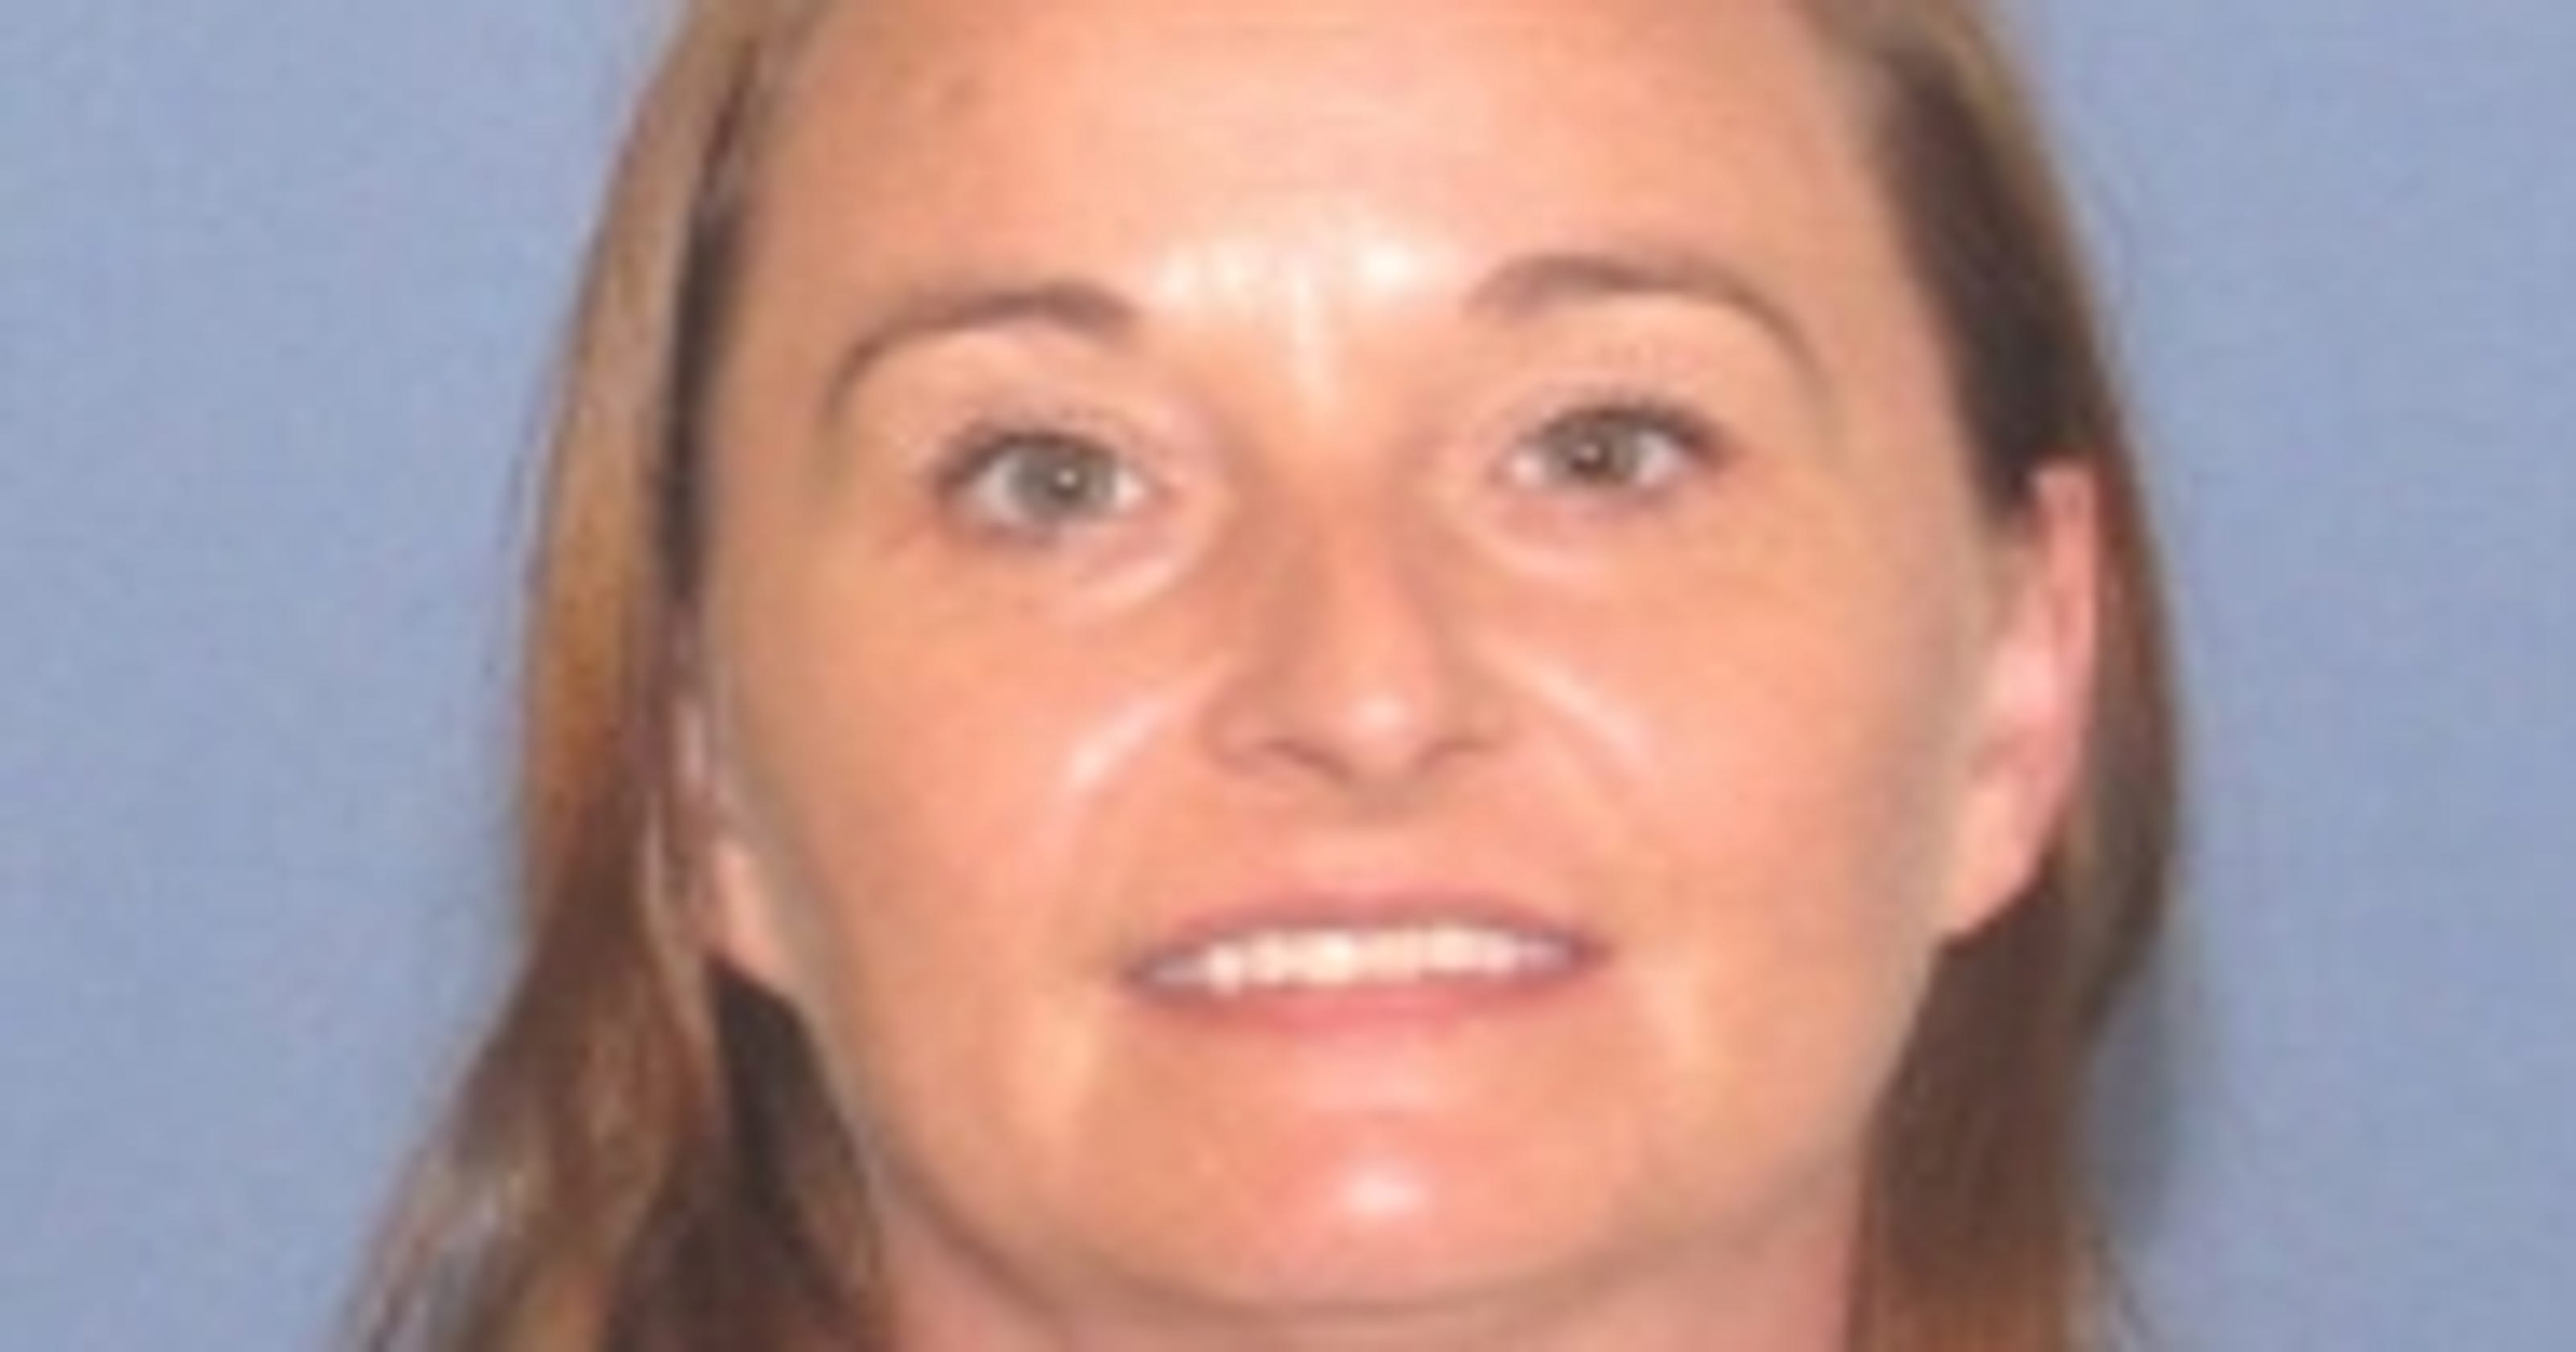 Chillicothe, Ohio police searching for missing woman